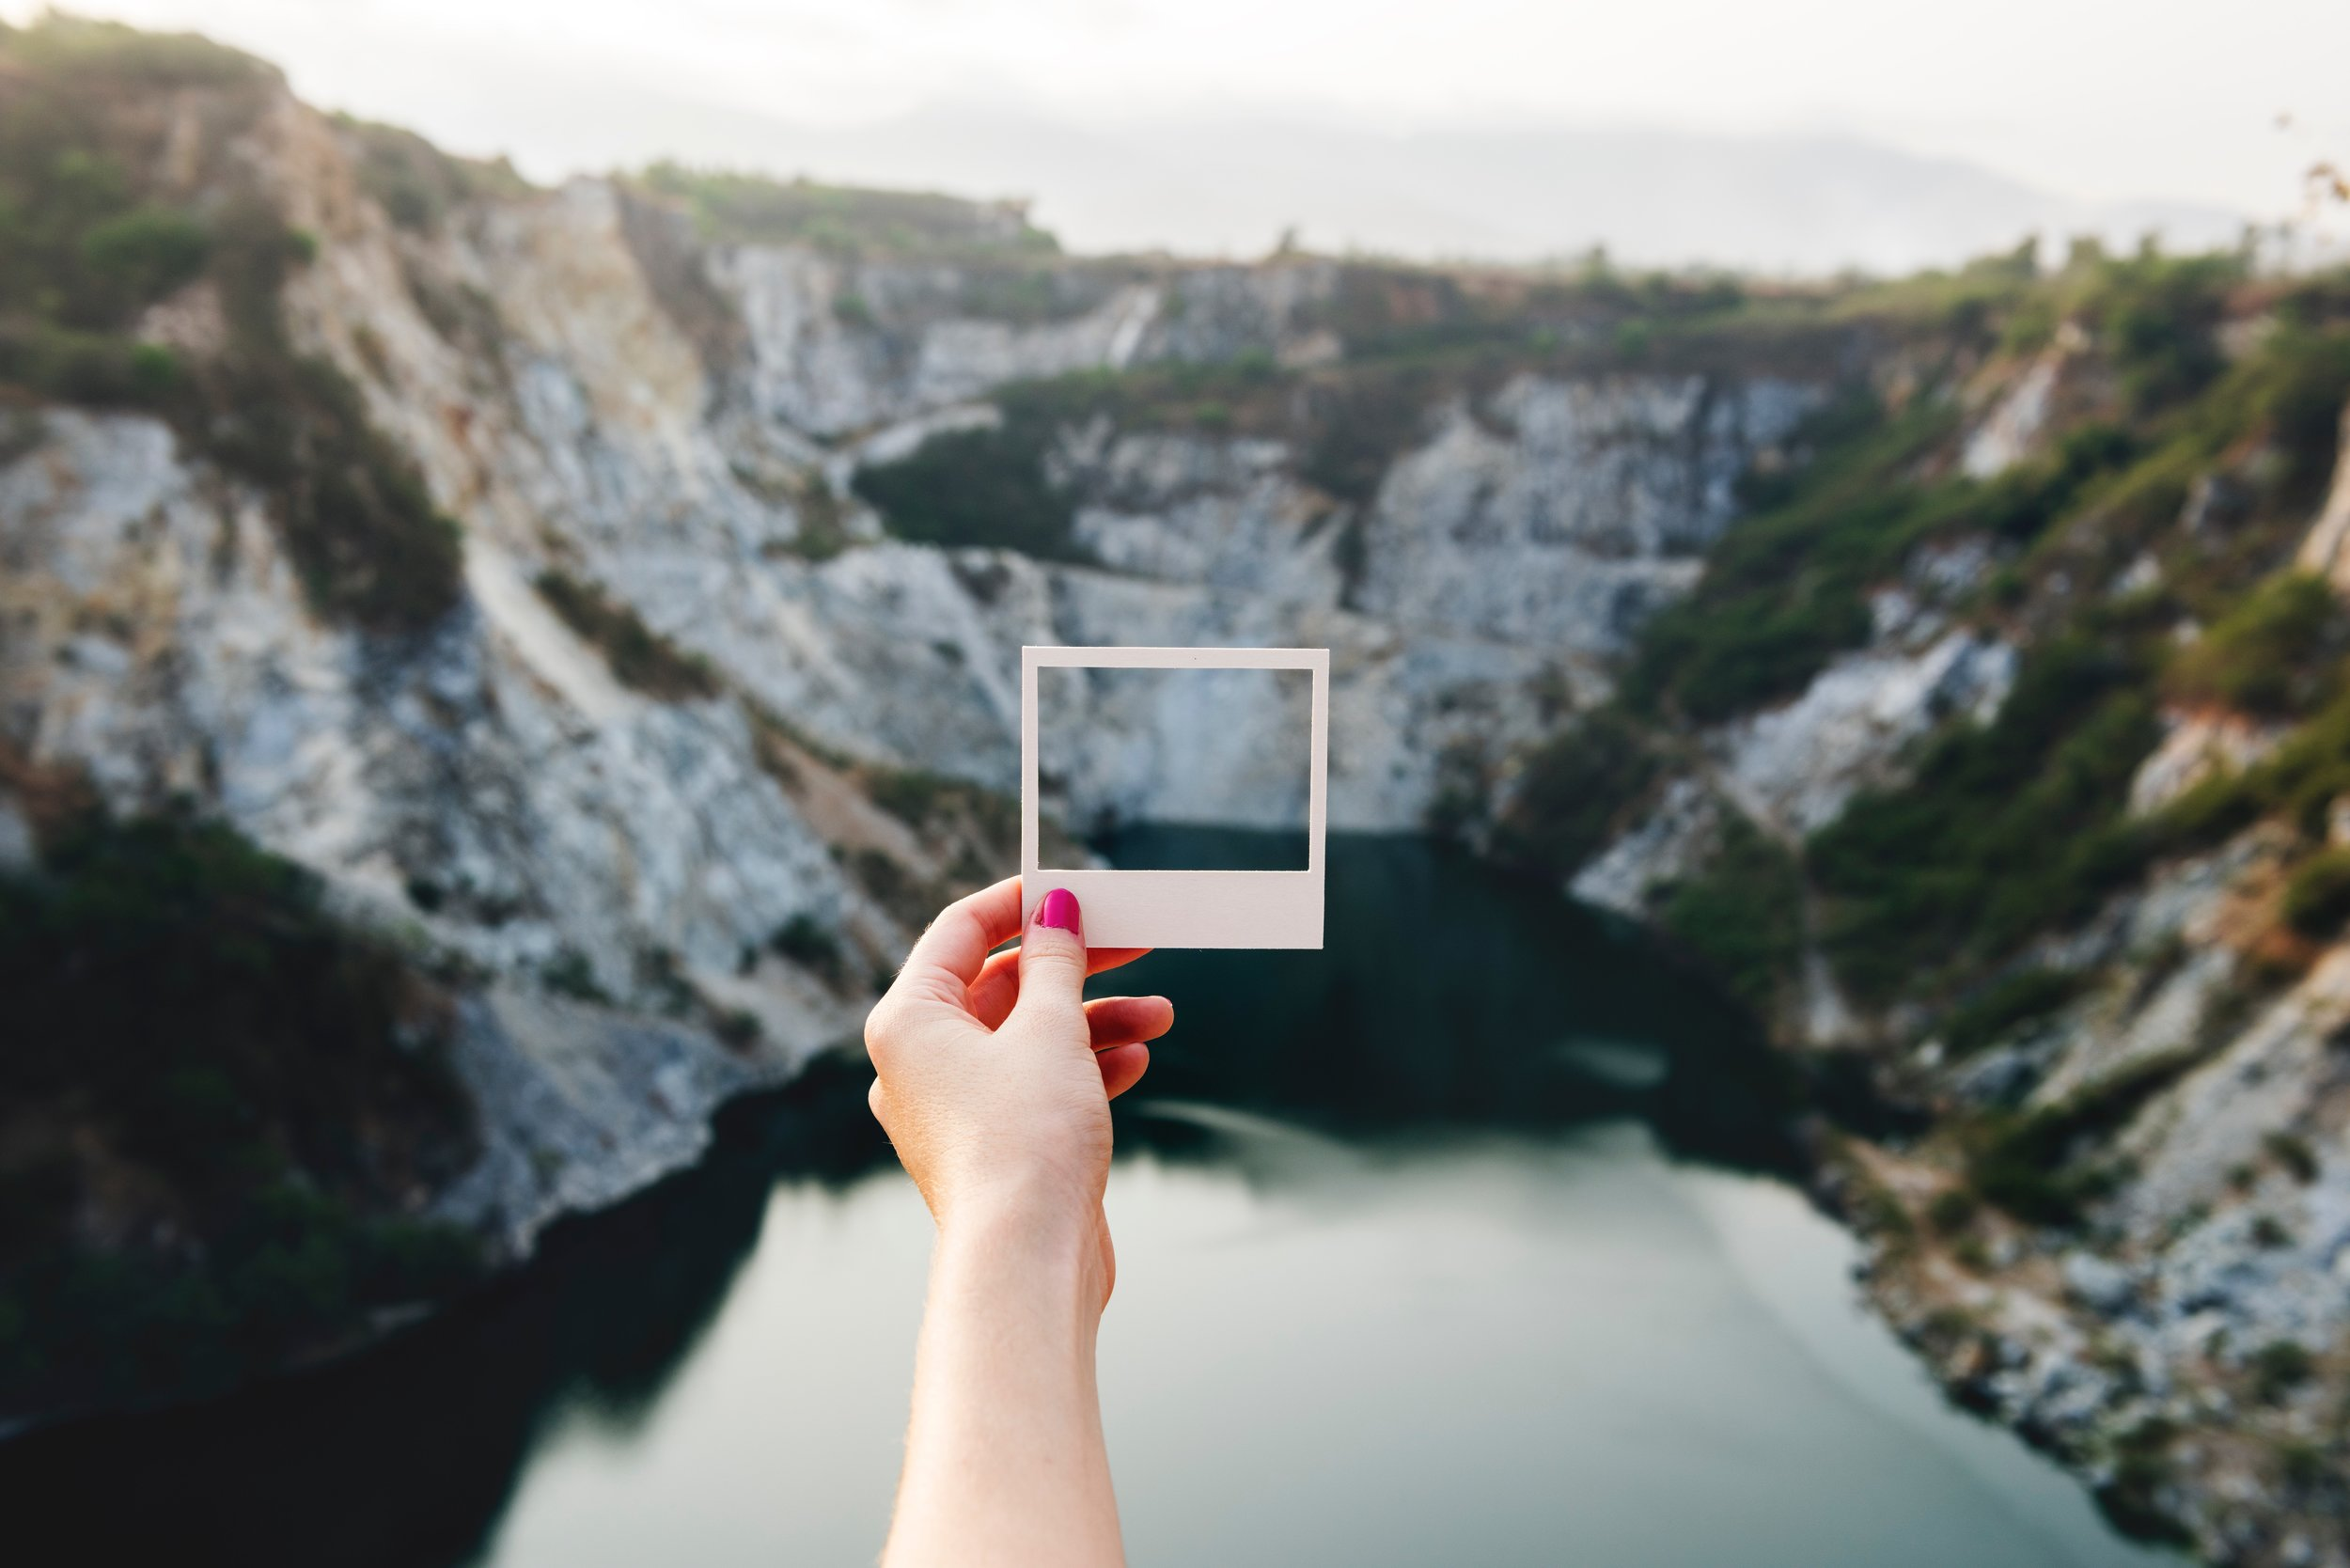 New transparency regulations set to roll out in 2018 will enable everyone to have the option of viewing unpublished page posts. (Photo credit: Raw Pixel via Unsplash)